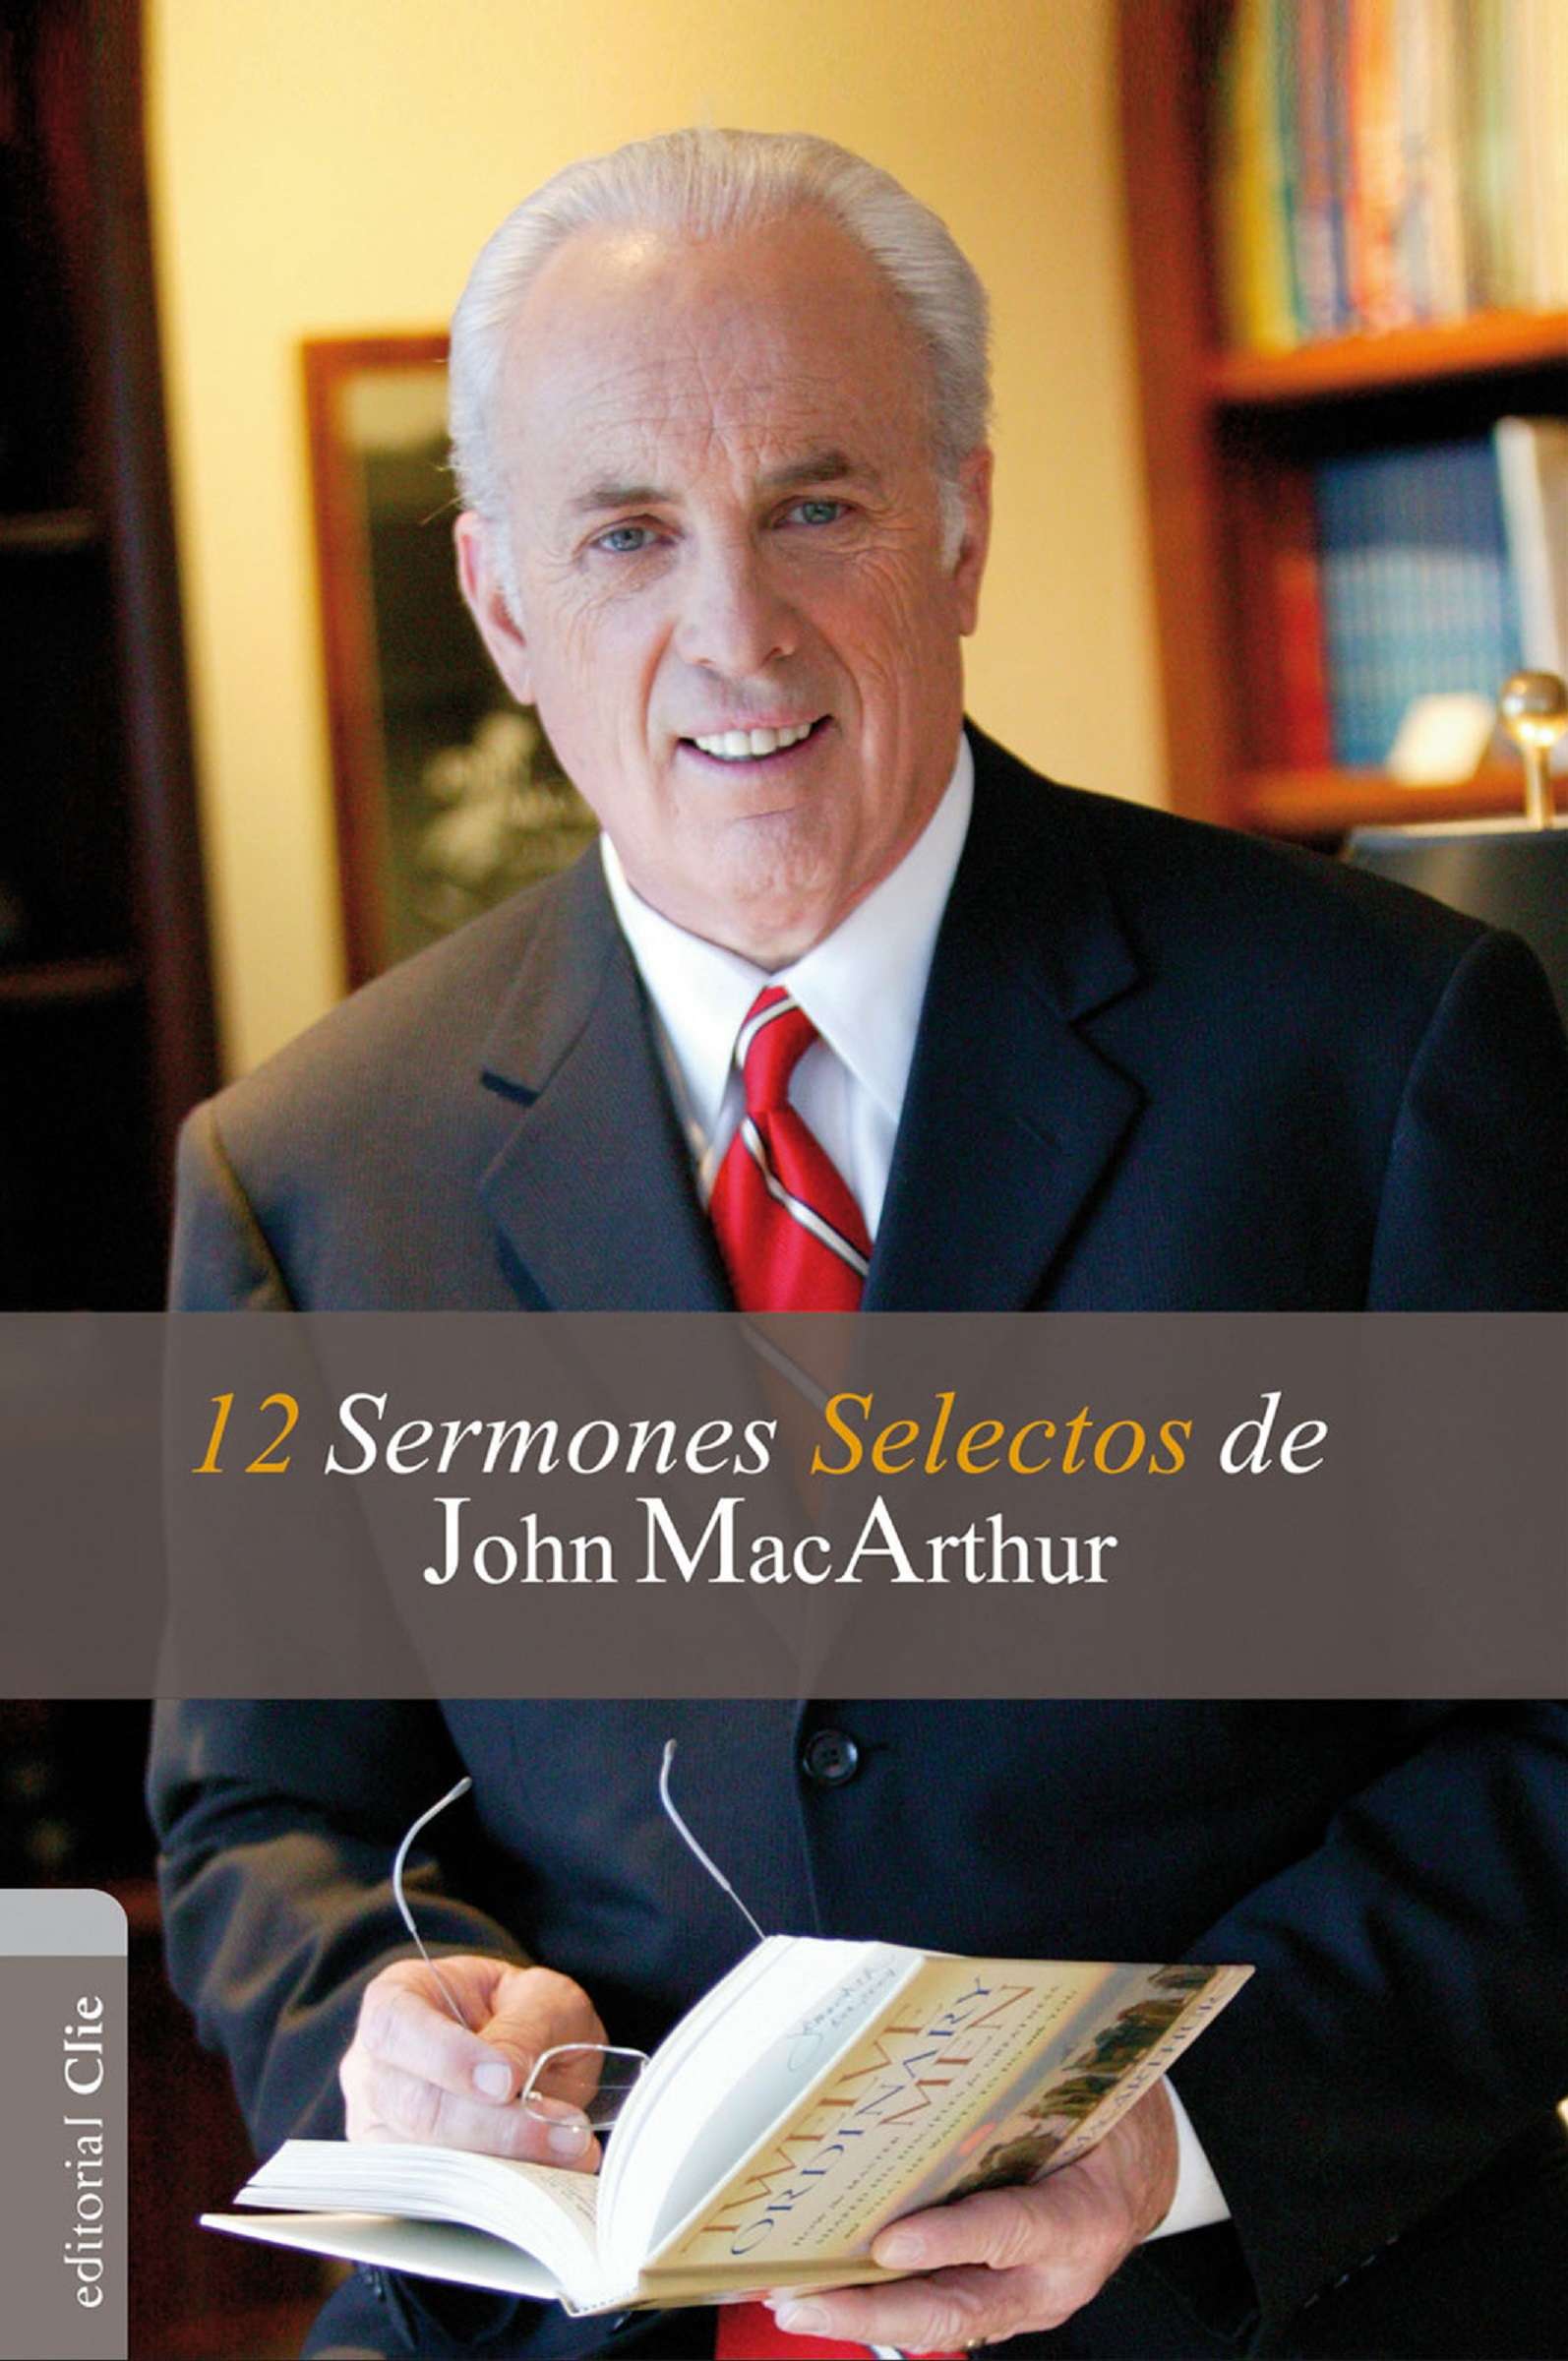 John MacArthur 12 sermones selectos de John MacArthur beibehang 3d wall papers home decor mural wallpaper for living room bedroom tv background wallpaper for walls 3 d flooring